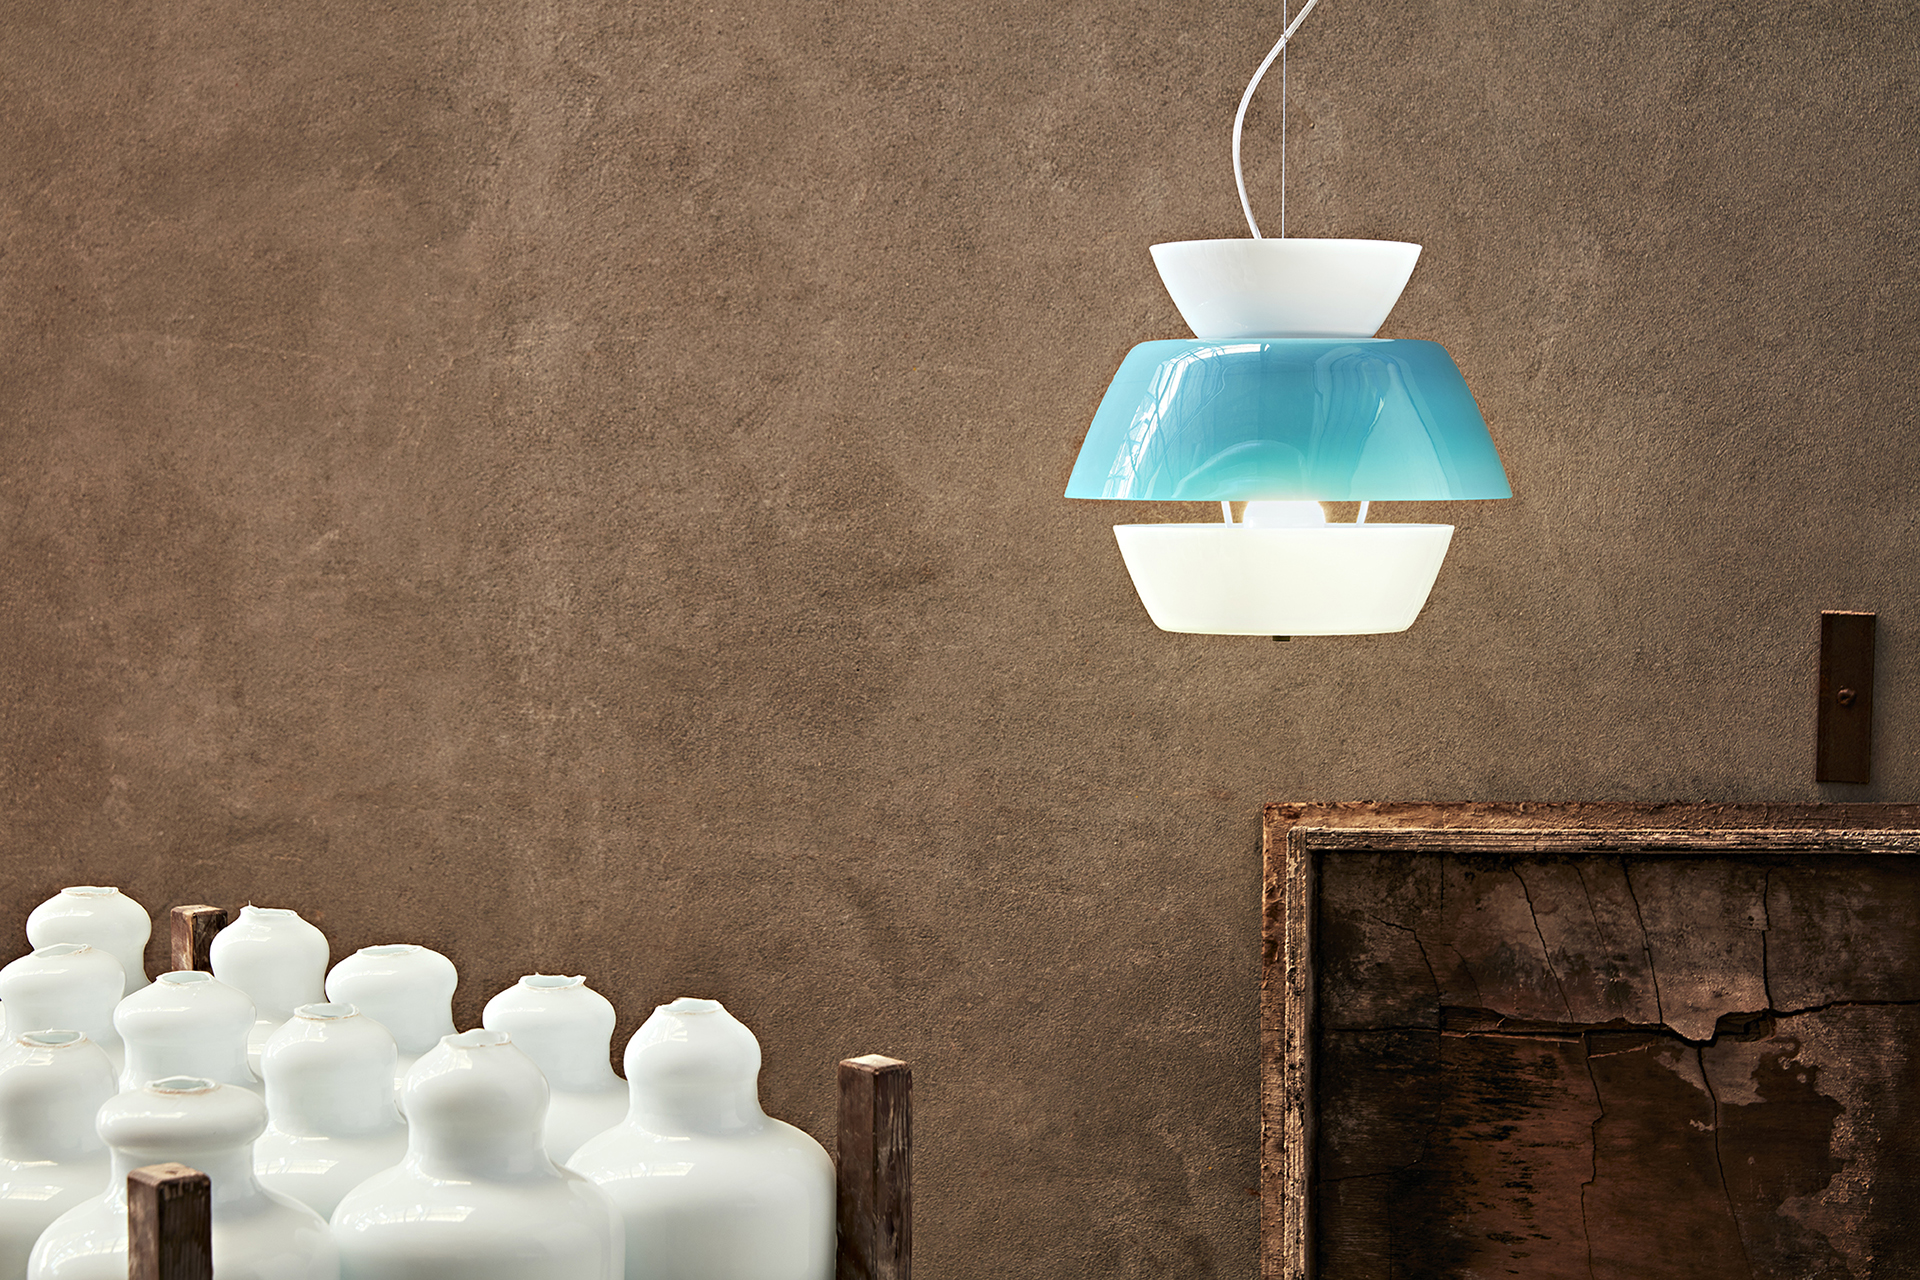 CarloMoretti - Lungomare, new decorative suspension lighting, made of mouth-blown glass with pastel colors